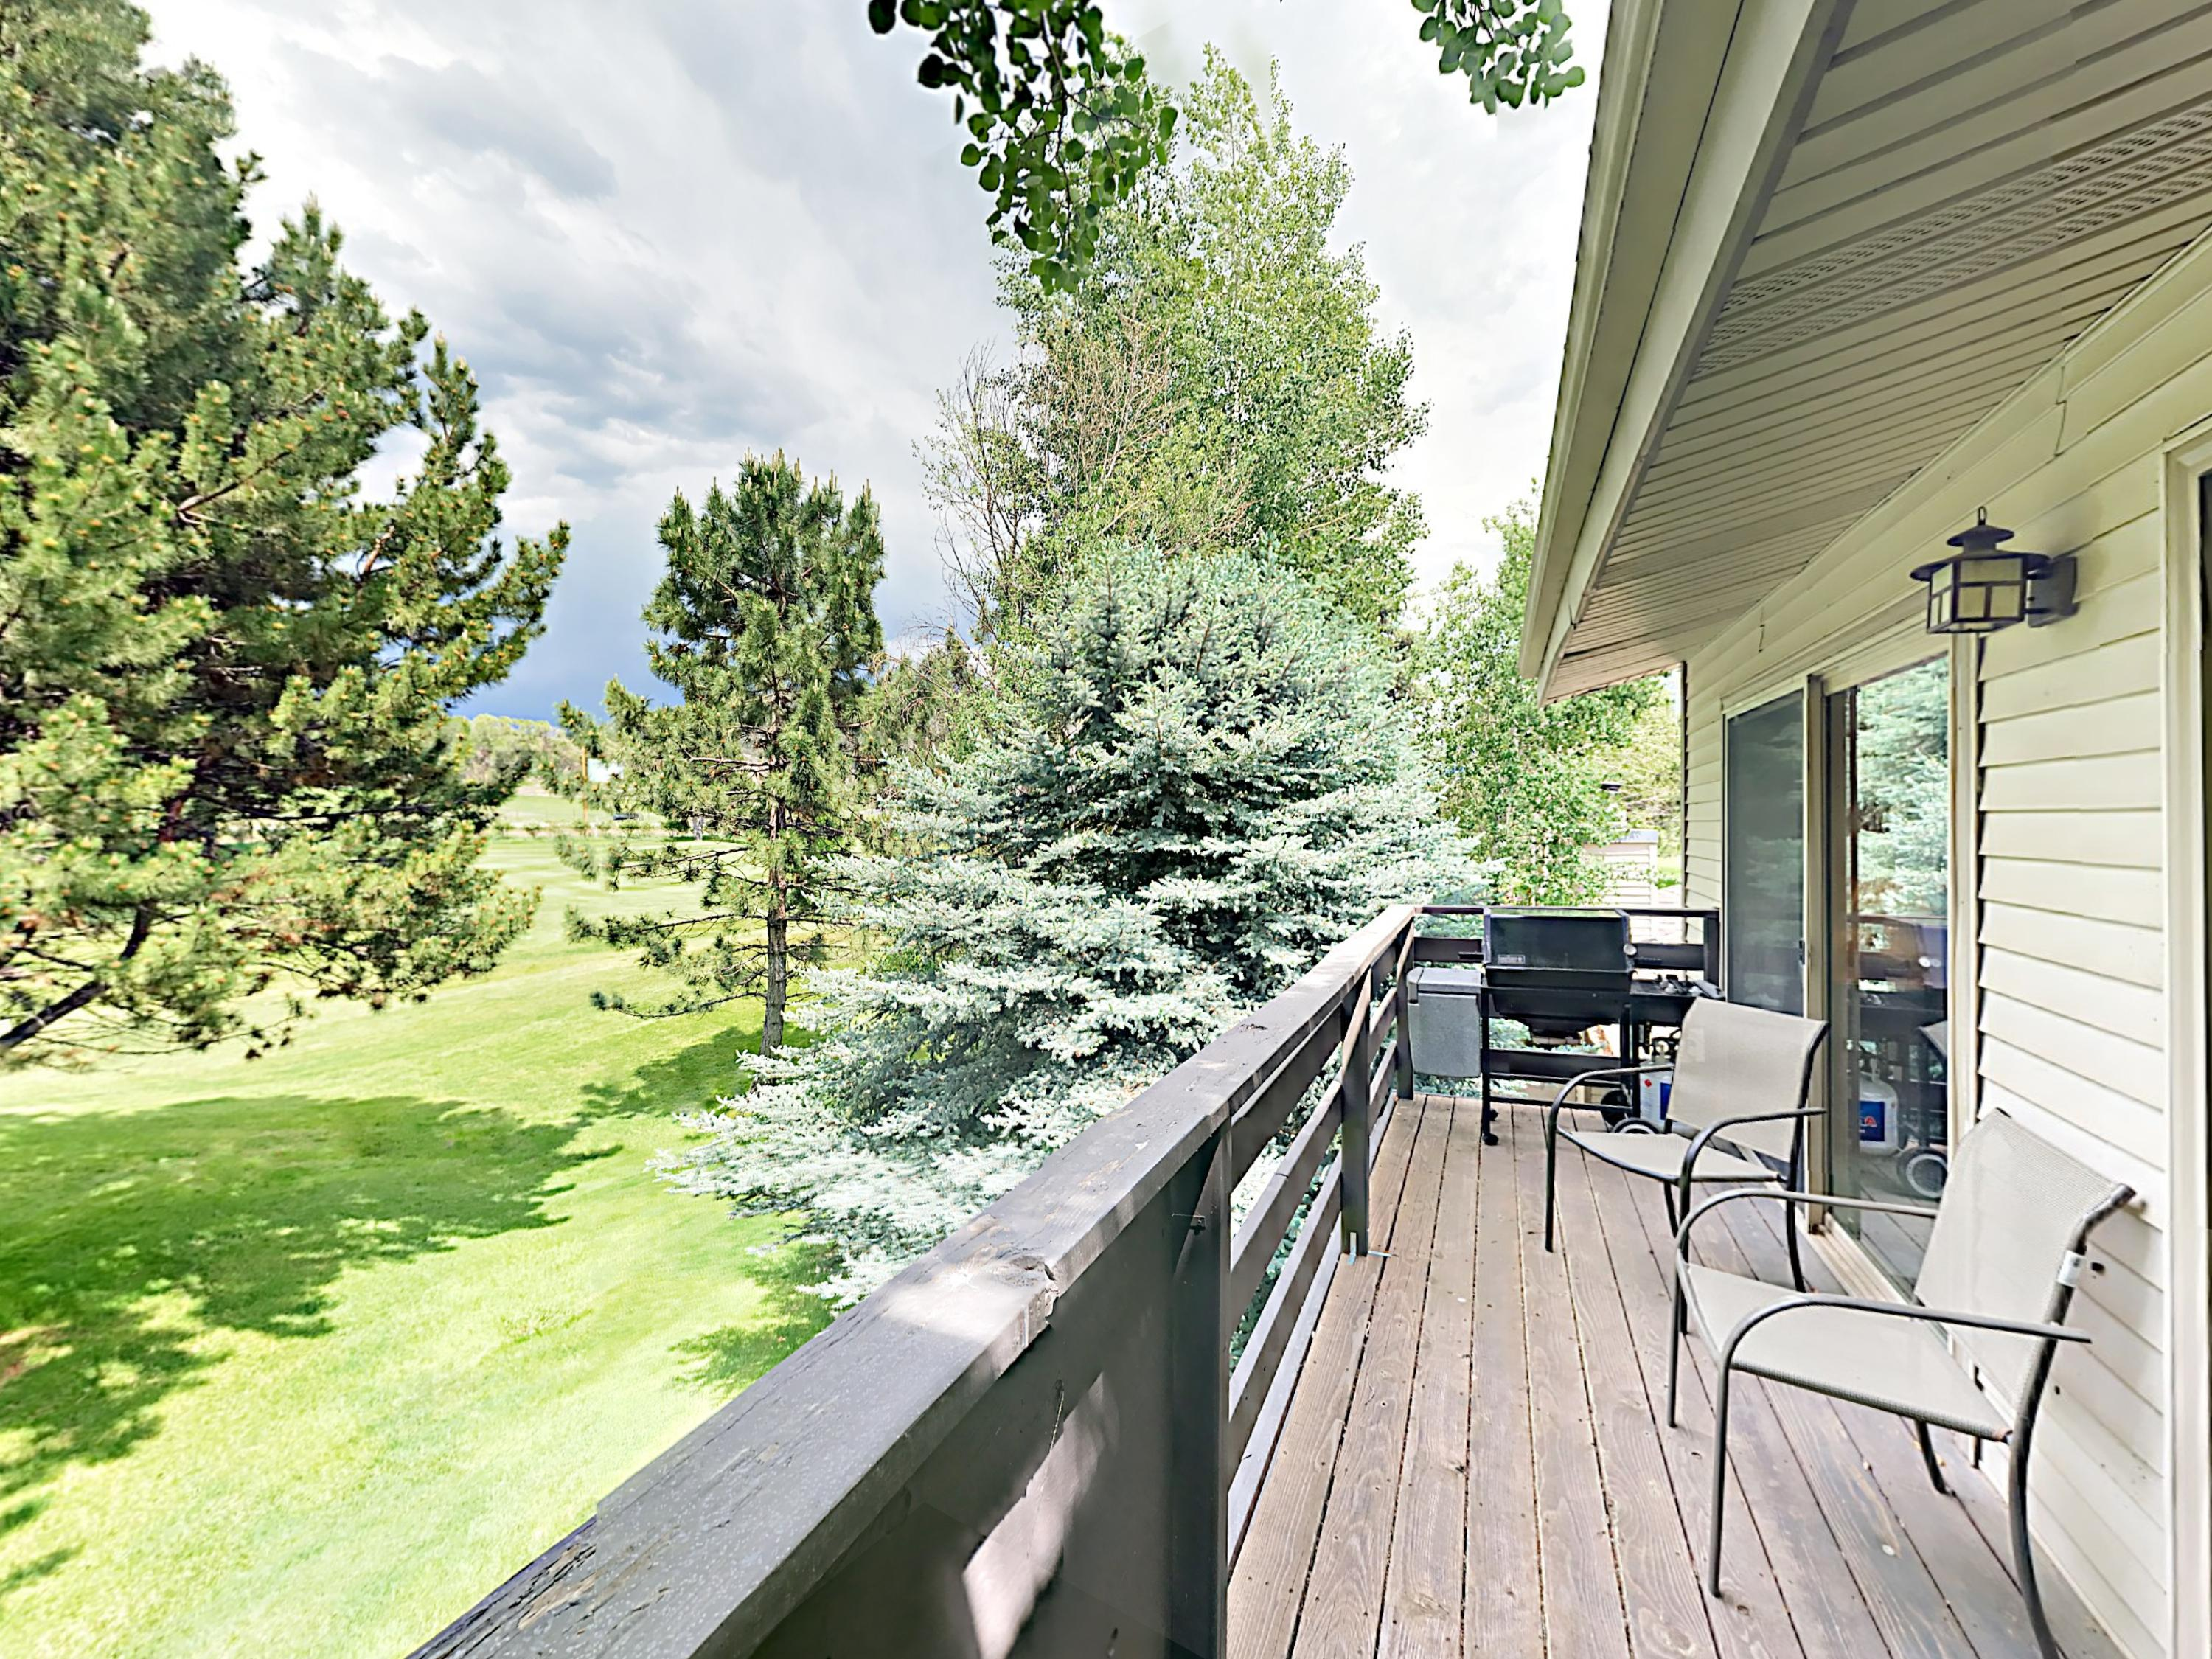 Welcome to Carbondale! Your rental condo is professionally managed and maintained by TurnKey Vacation Rentals.